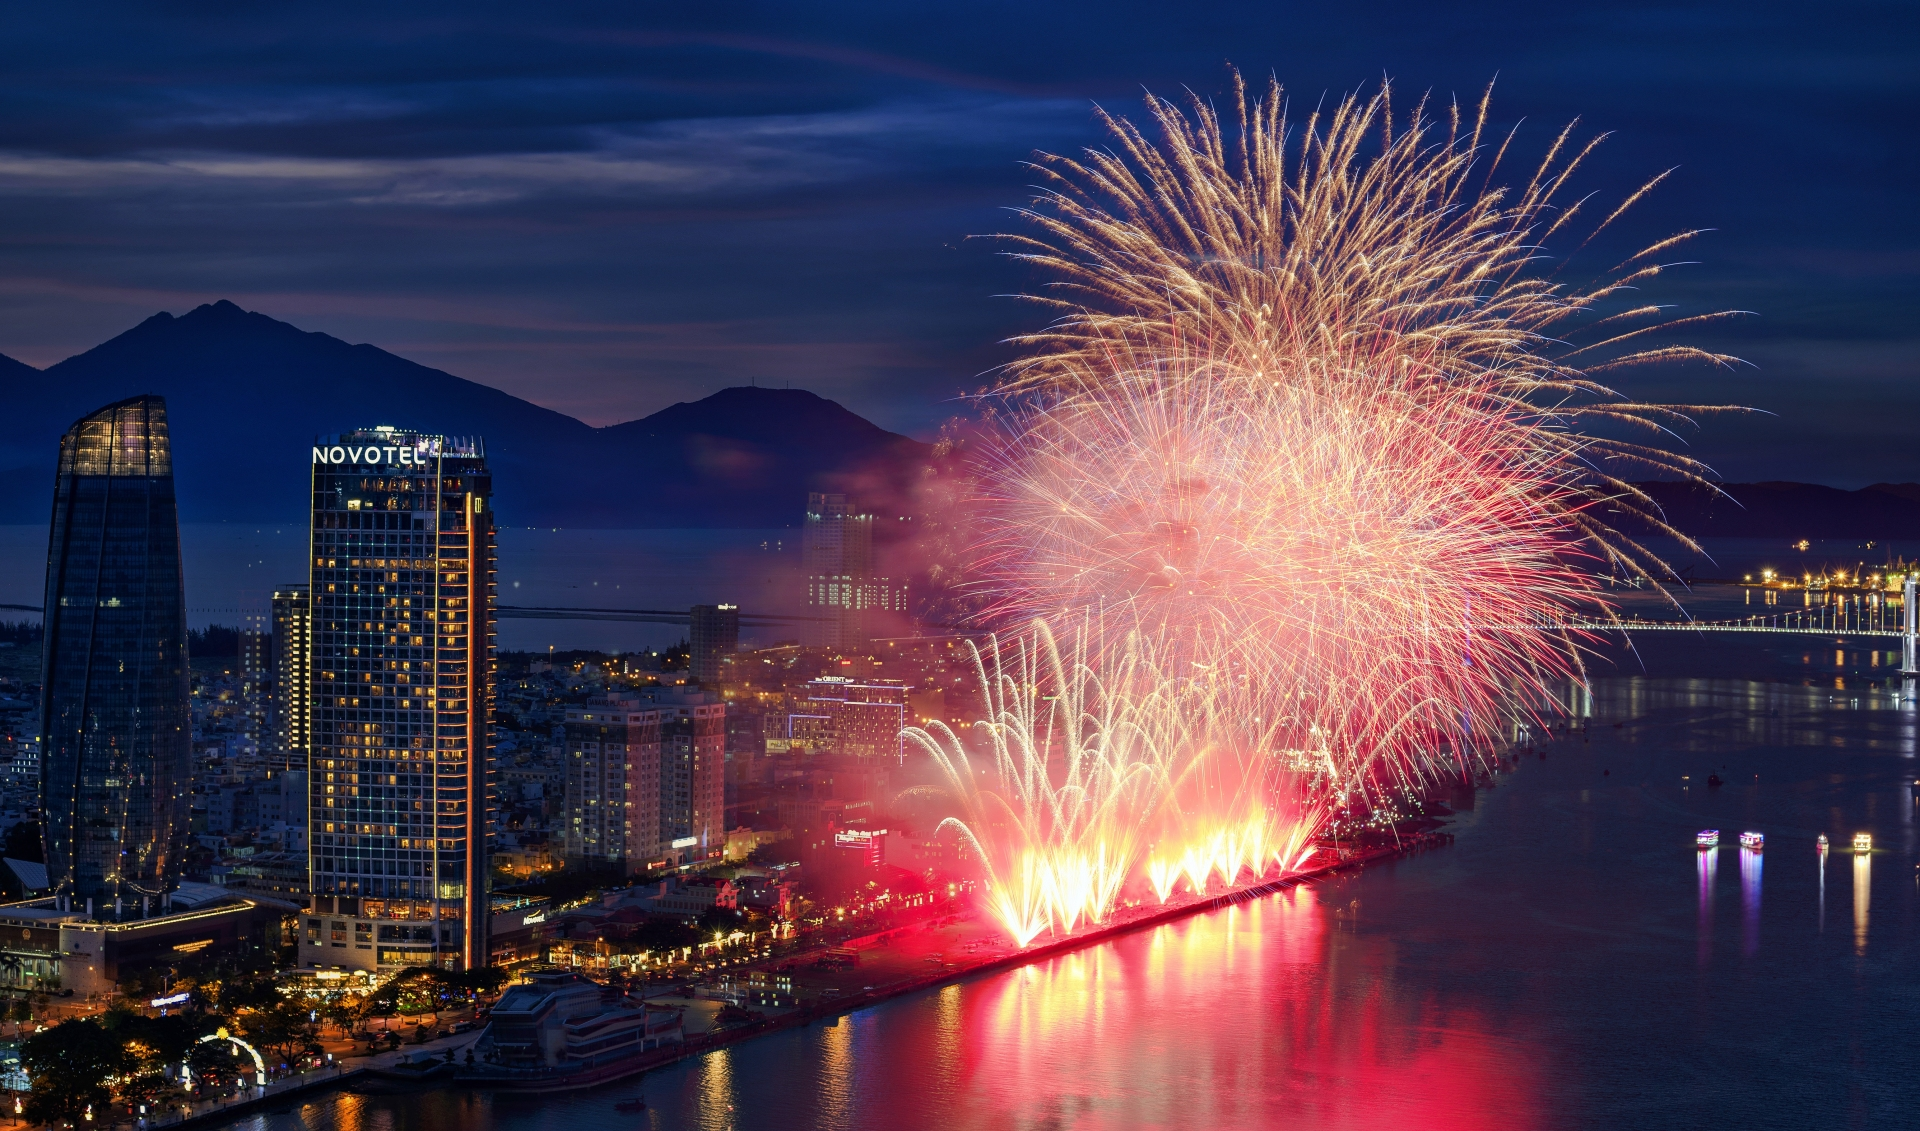 Novotel Danang - the best place in town to enjoy fireworks festival